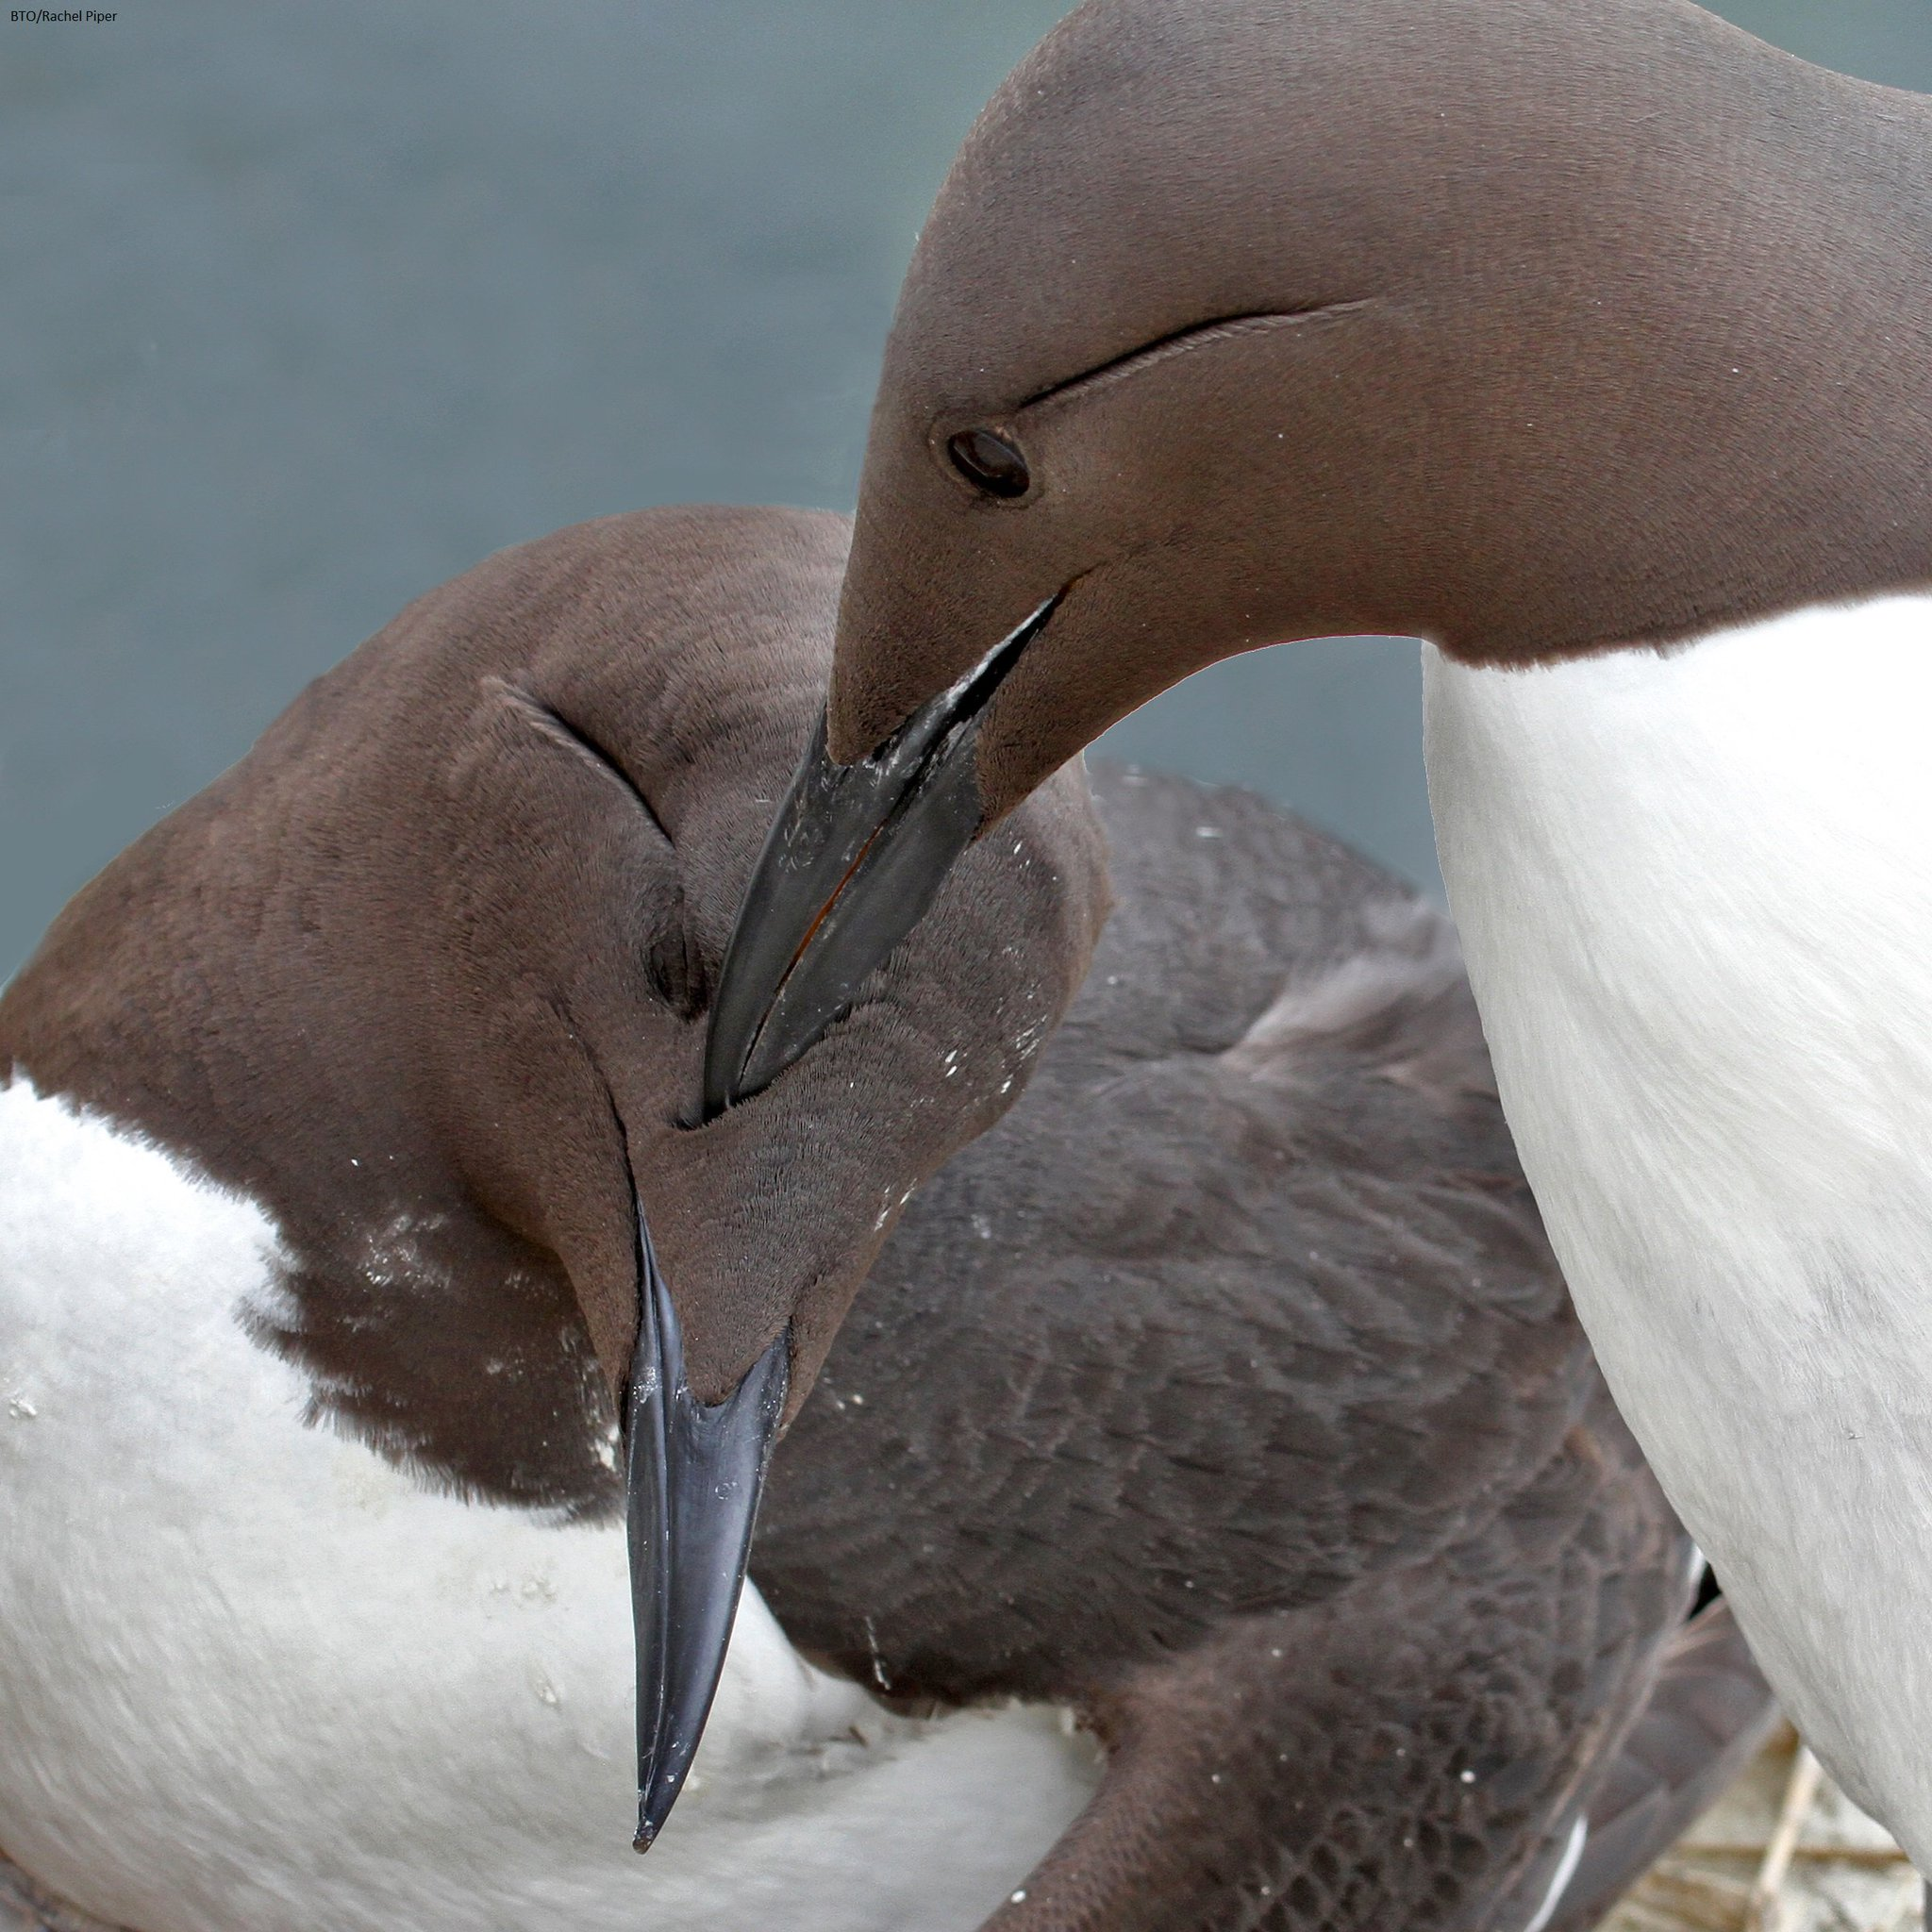 Day 2 of #BTOConf16 & we're starting with @ElspethKenny's studies on allopreening in Guillemots @skomer_island: https://t.co/fGaExTka3n https://t.co/X52gzT0GBL